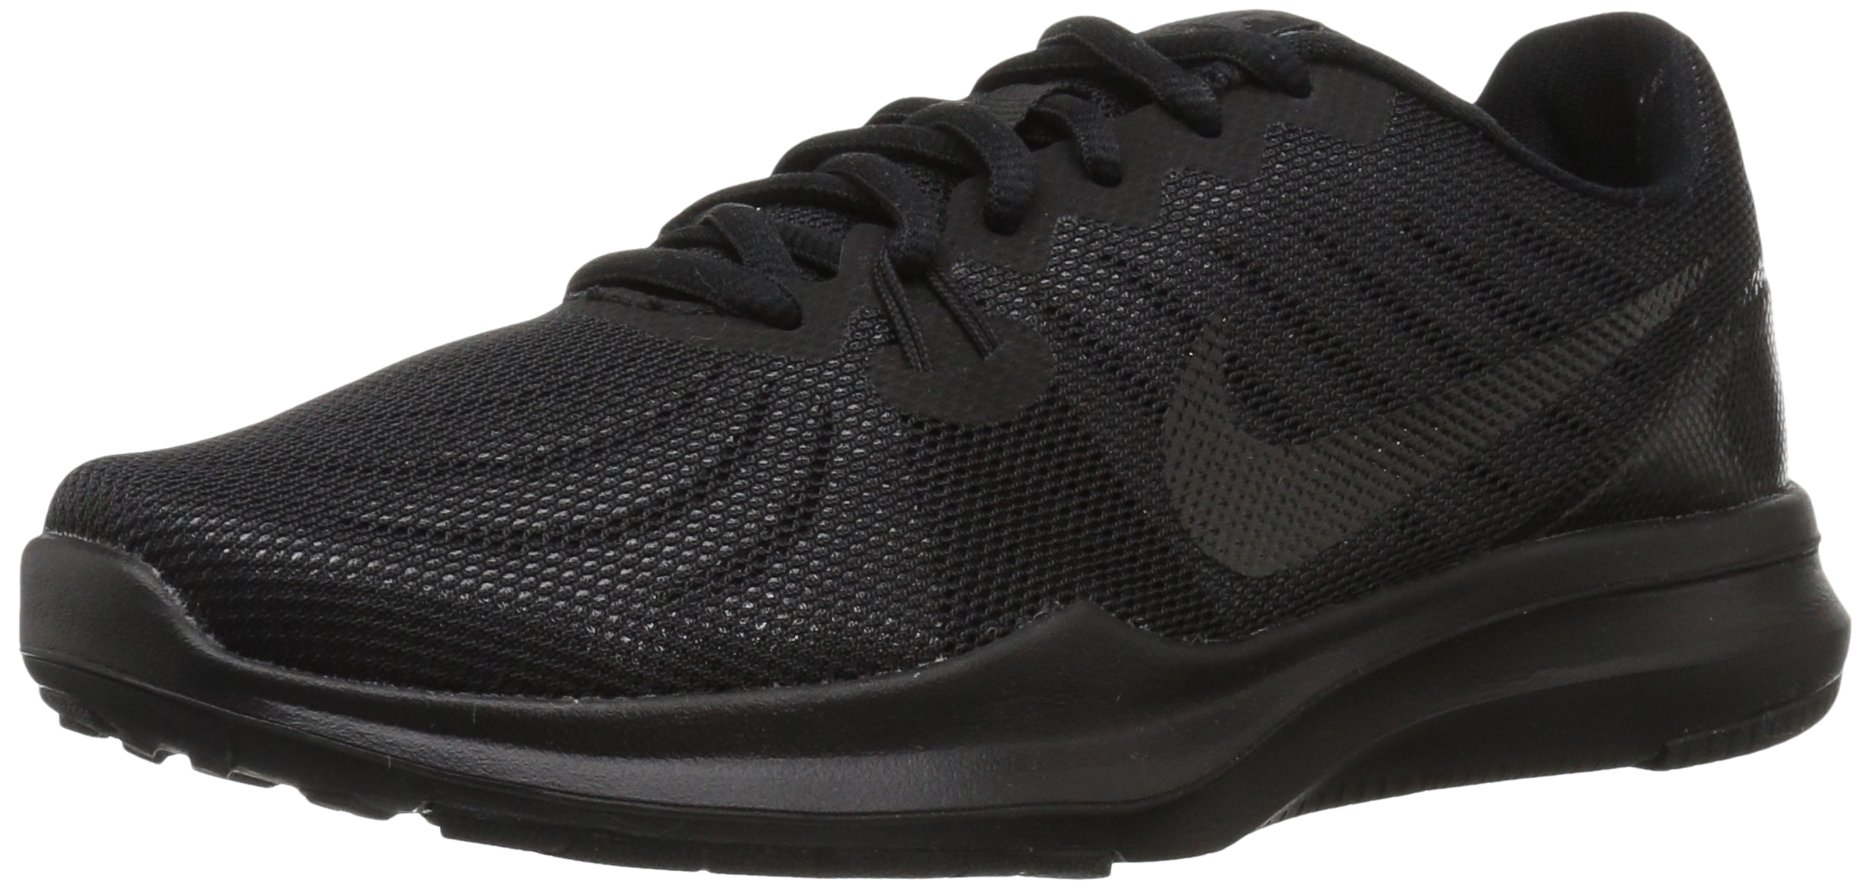 Nike Women's in-Season Trainer 7 Cross Anthracite-Black, 10.0 Regular US